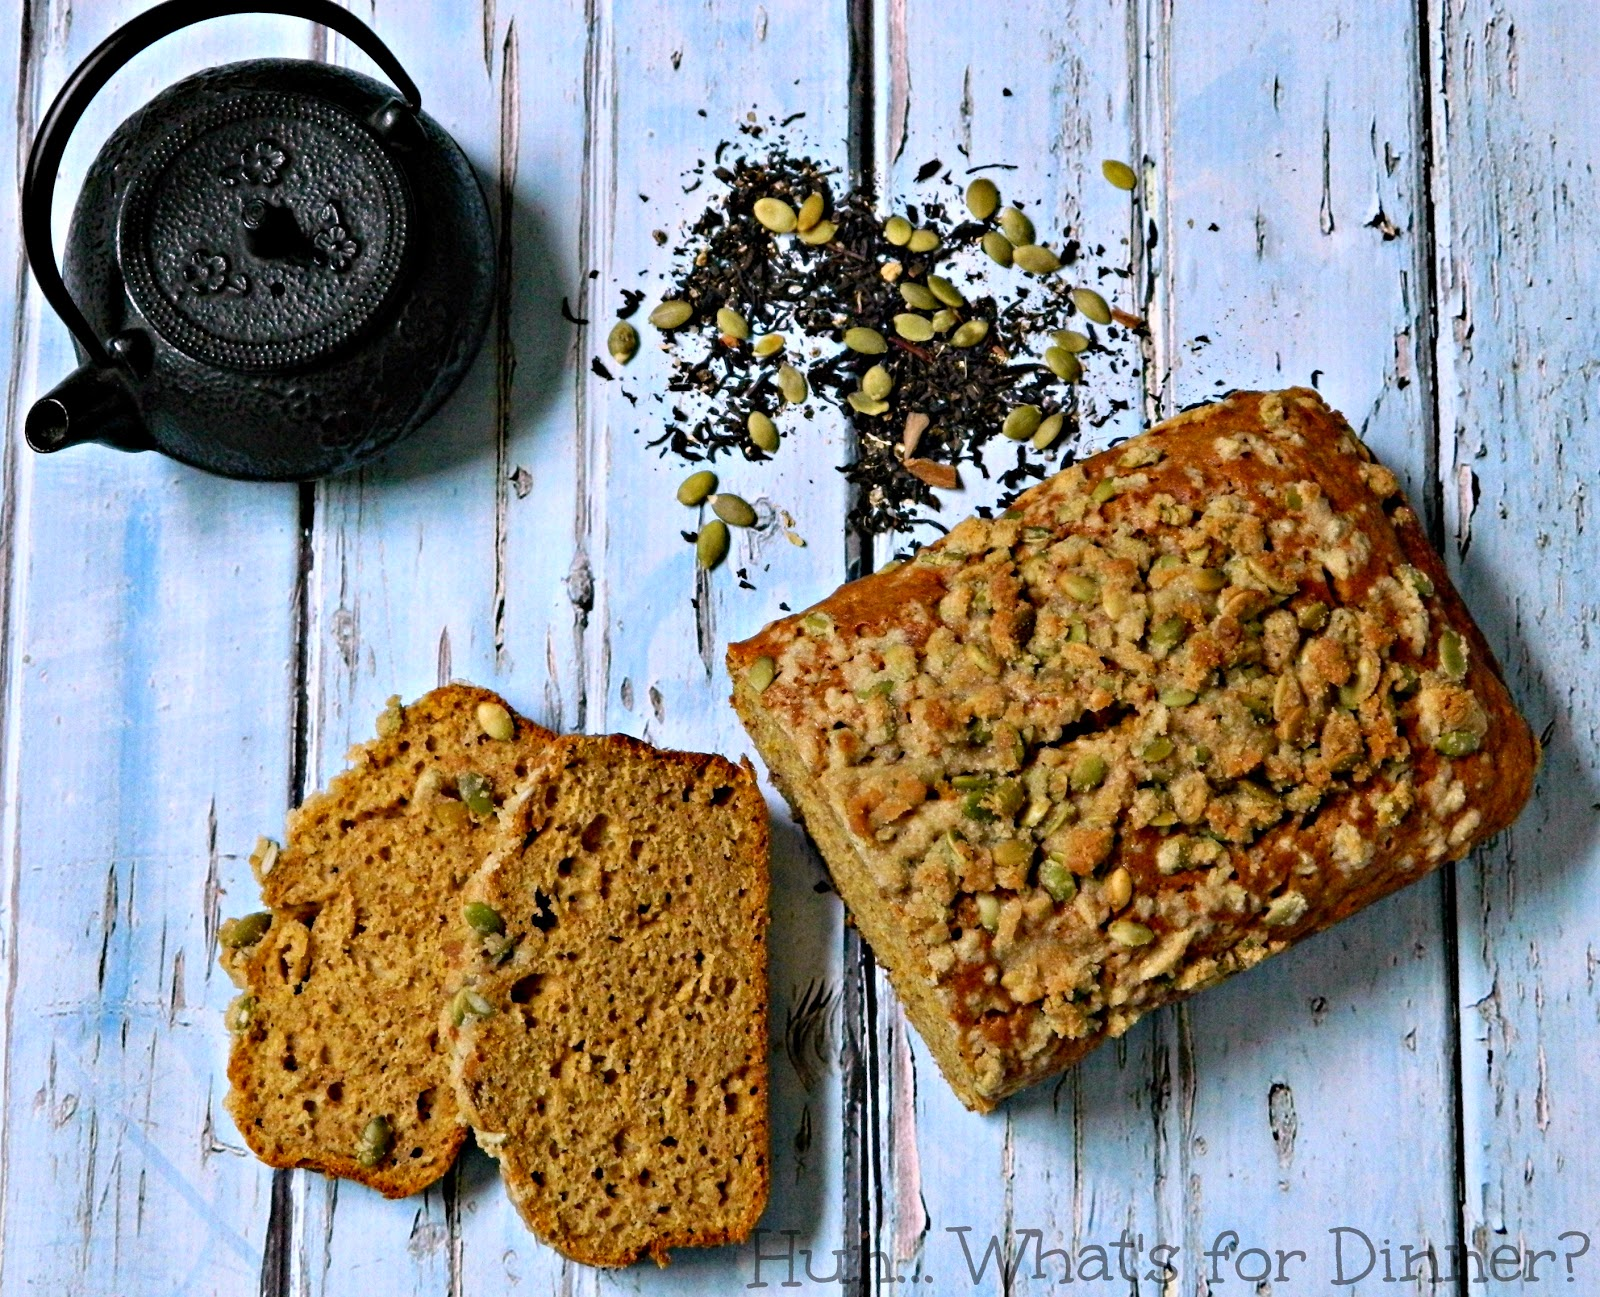 Warm spices found in Chai tea, are paired with vanilla bean and pumpkin, in this moist delicious loaf of sweet bread.